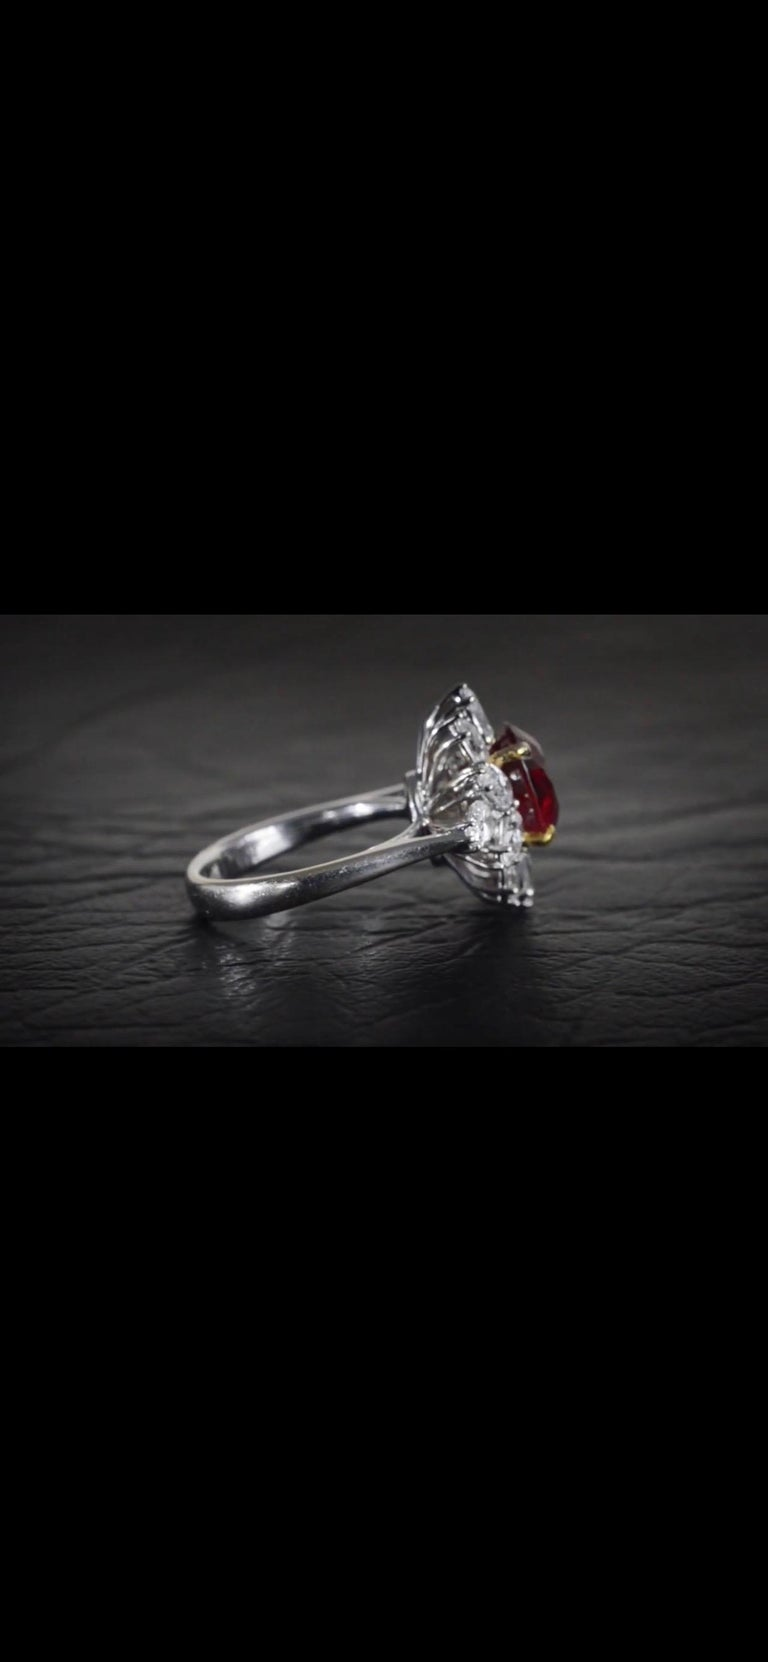 Triple Certified 4.09ct Natural Burmese Ruby & Diamond Cocktail Ring 18Kt Gold  For Sale 2